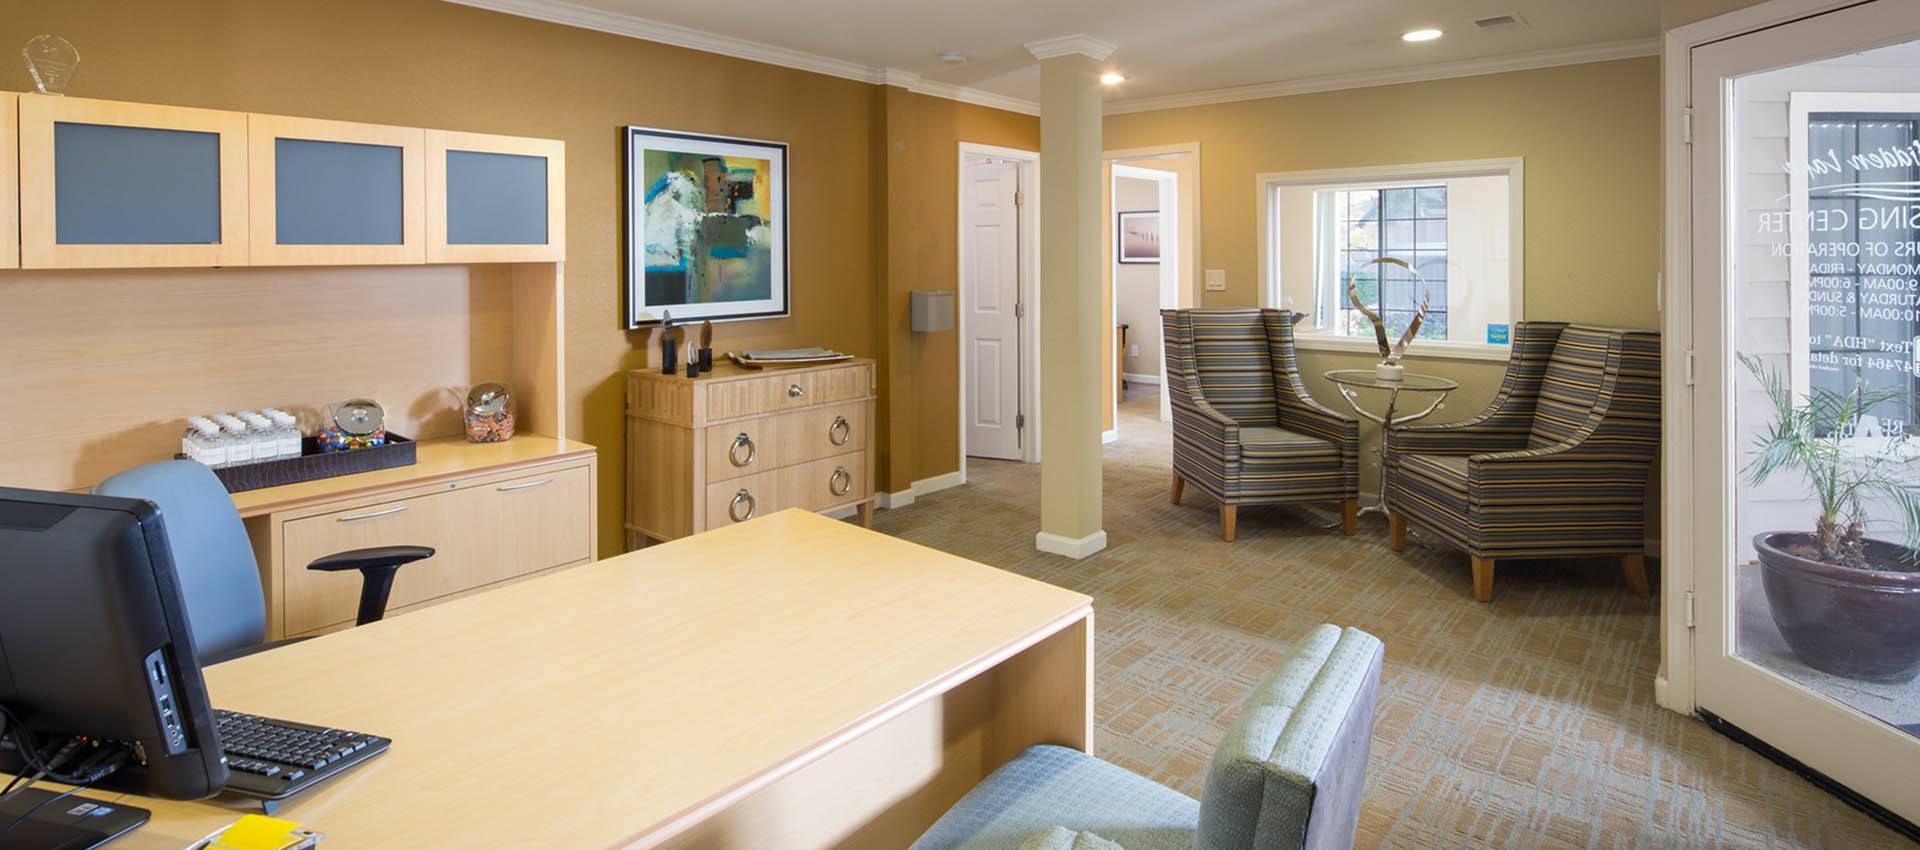 Leasing Office Interior at Hidden Lake Condominium Rentals in Sacramento, CA